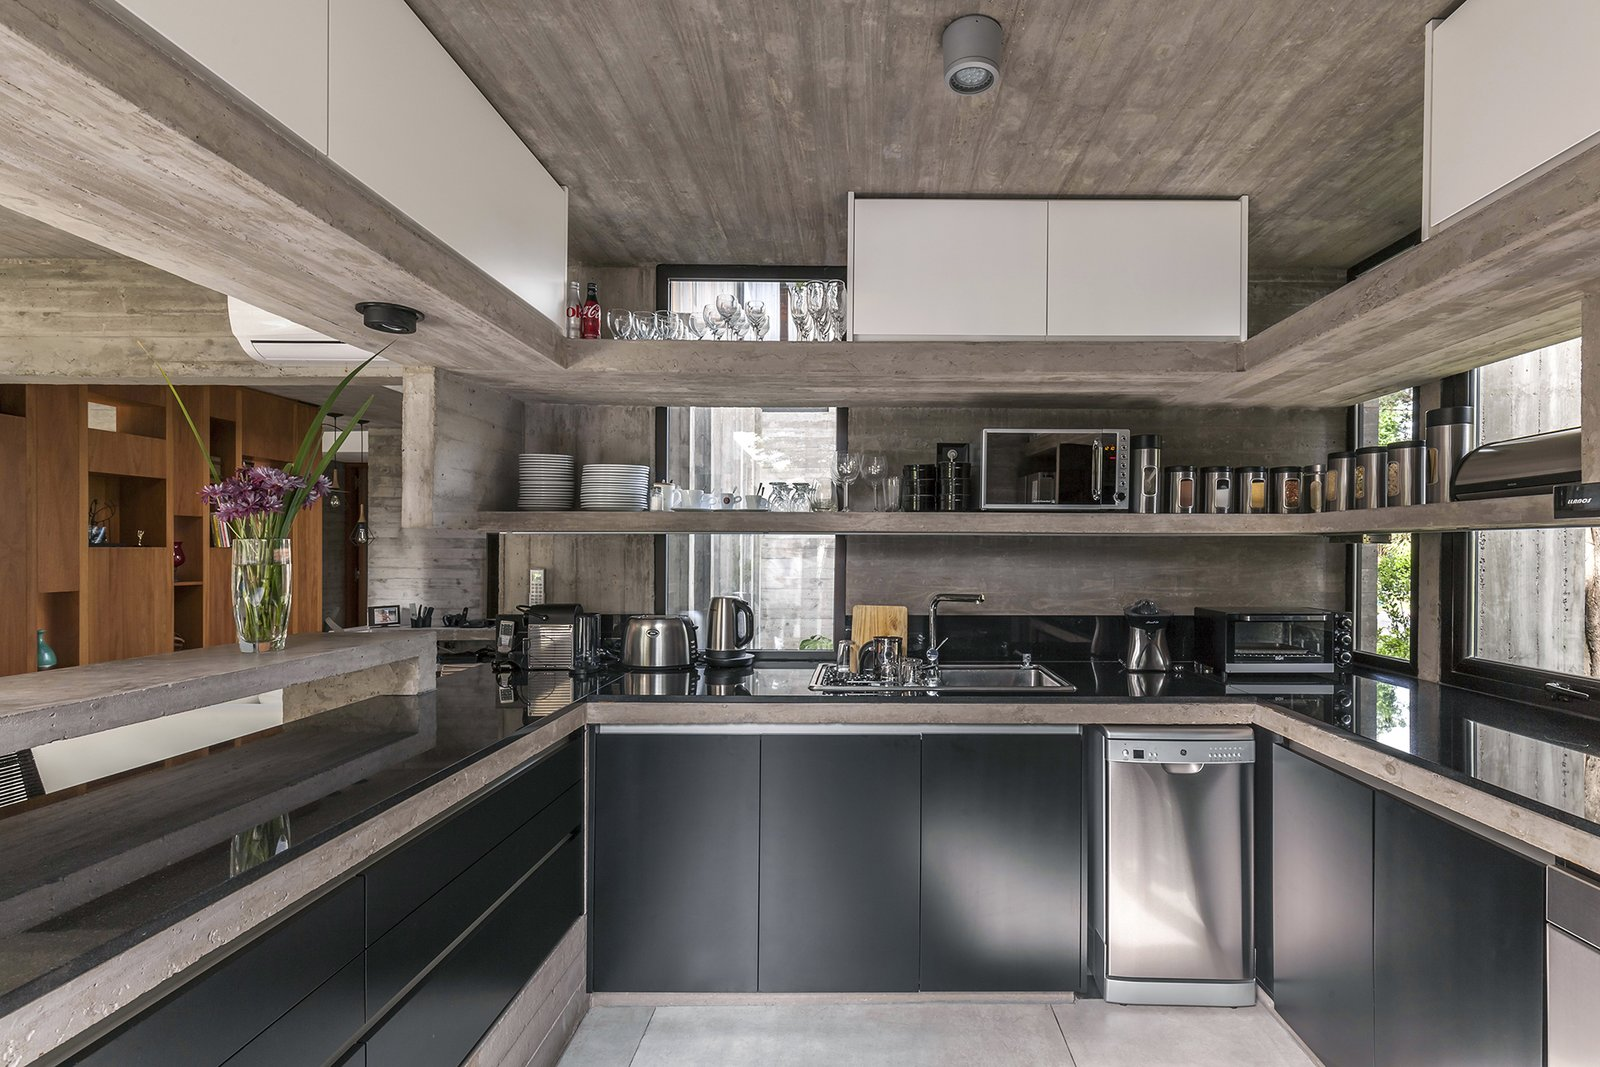 Kitchen, Granite, Laminate, Ceramic Tile, Stone Slab, Concrete, Accent, Undermount, Microwave, and Dishwasher Aranzazu House - Besonías Almeida arquitectos  Best Kitchen Granite Laminate Photos from Aranzazu House